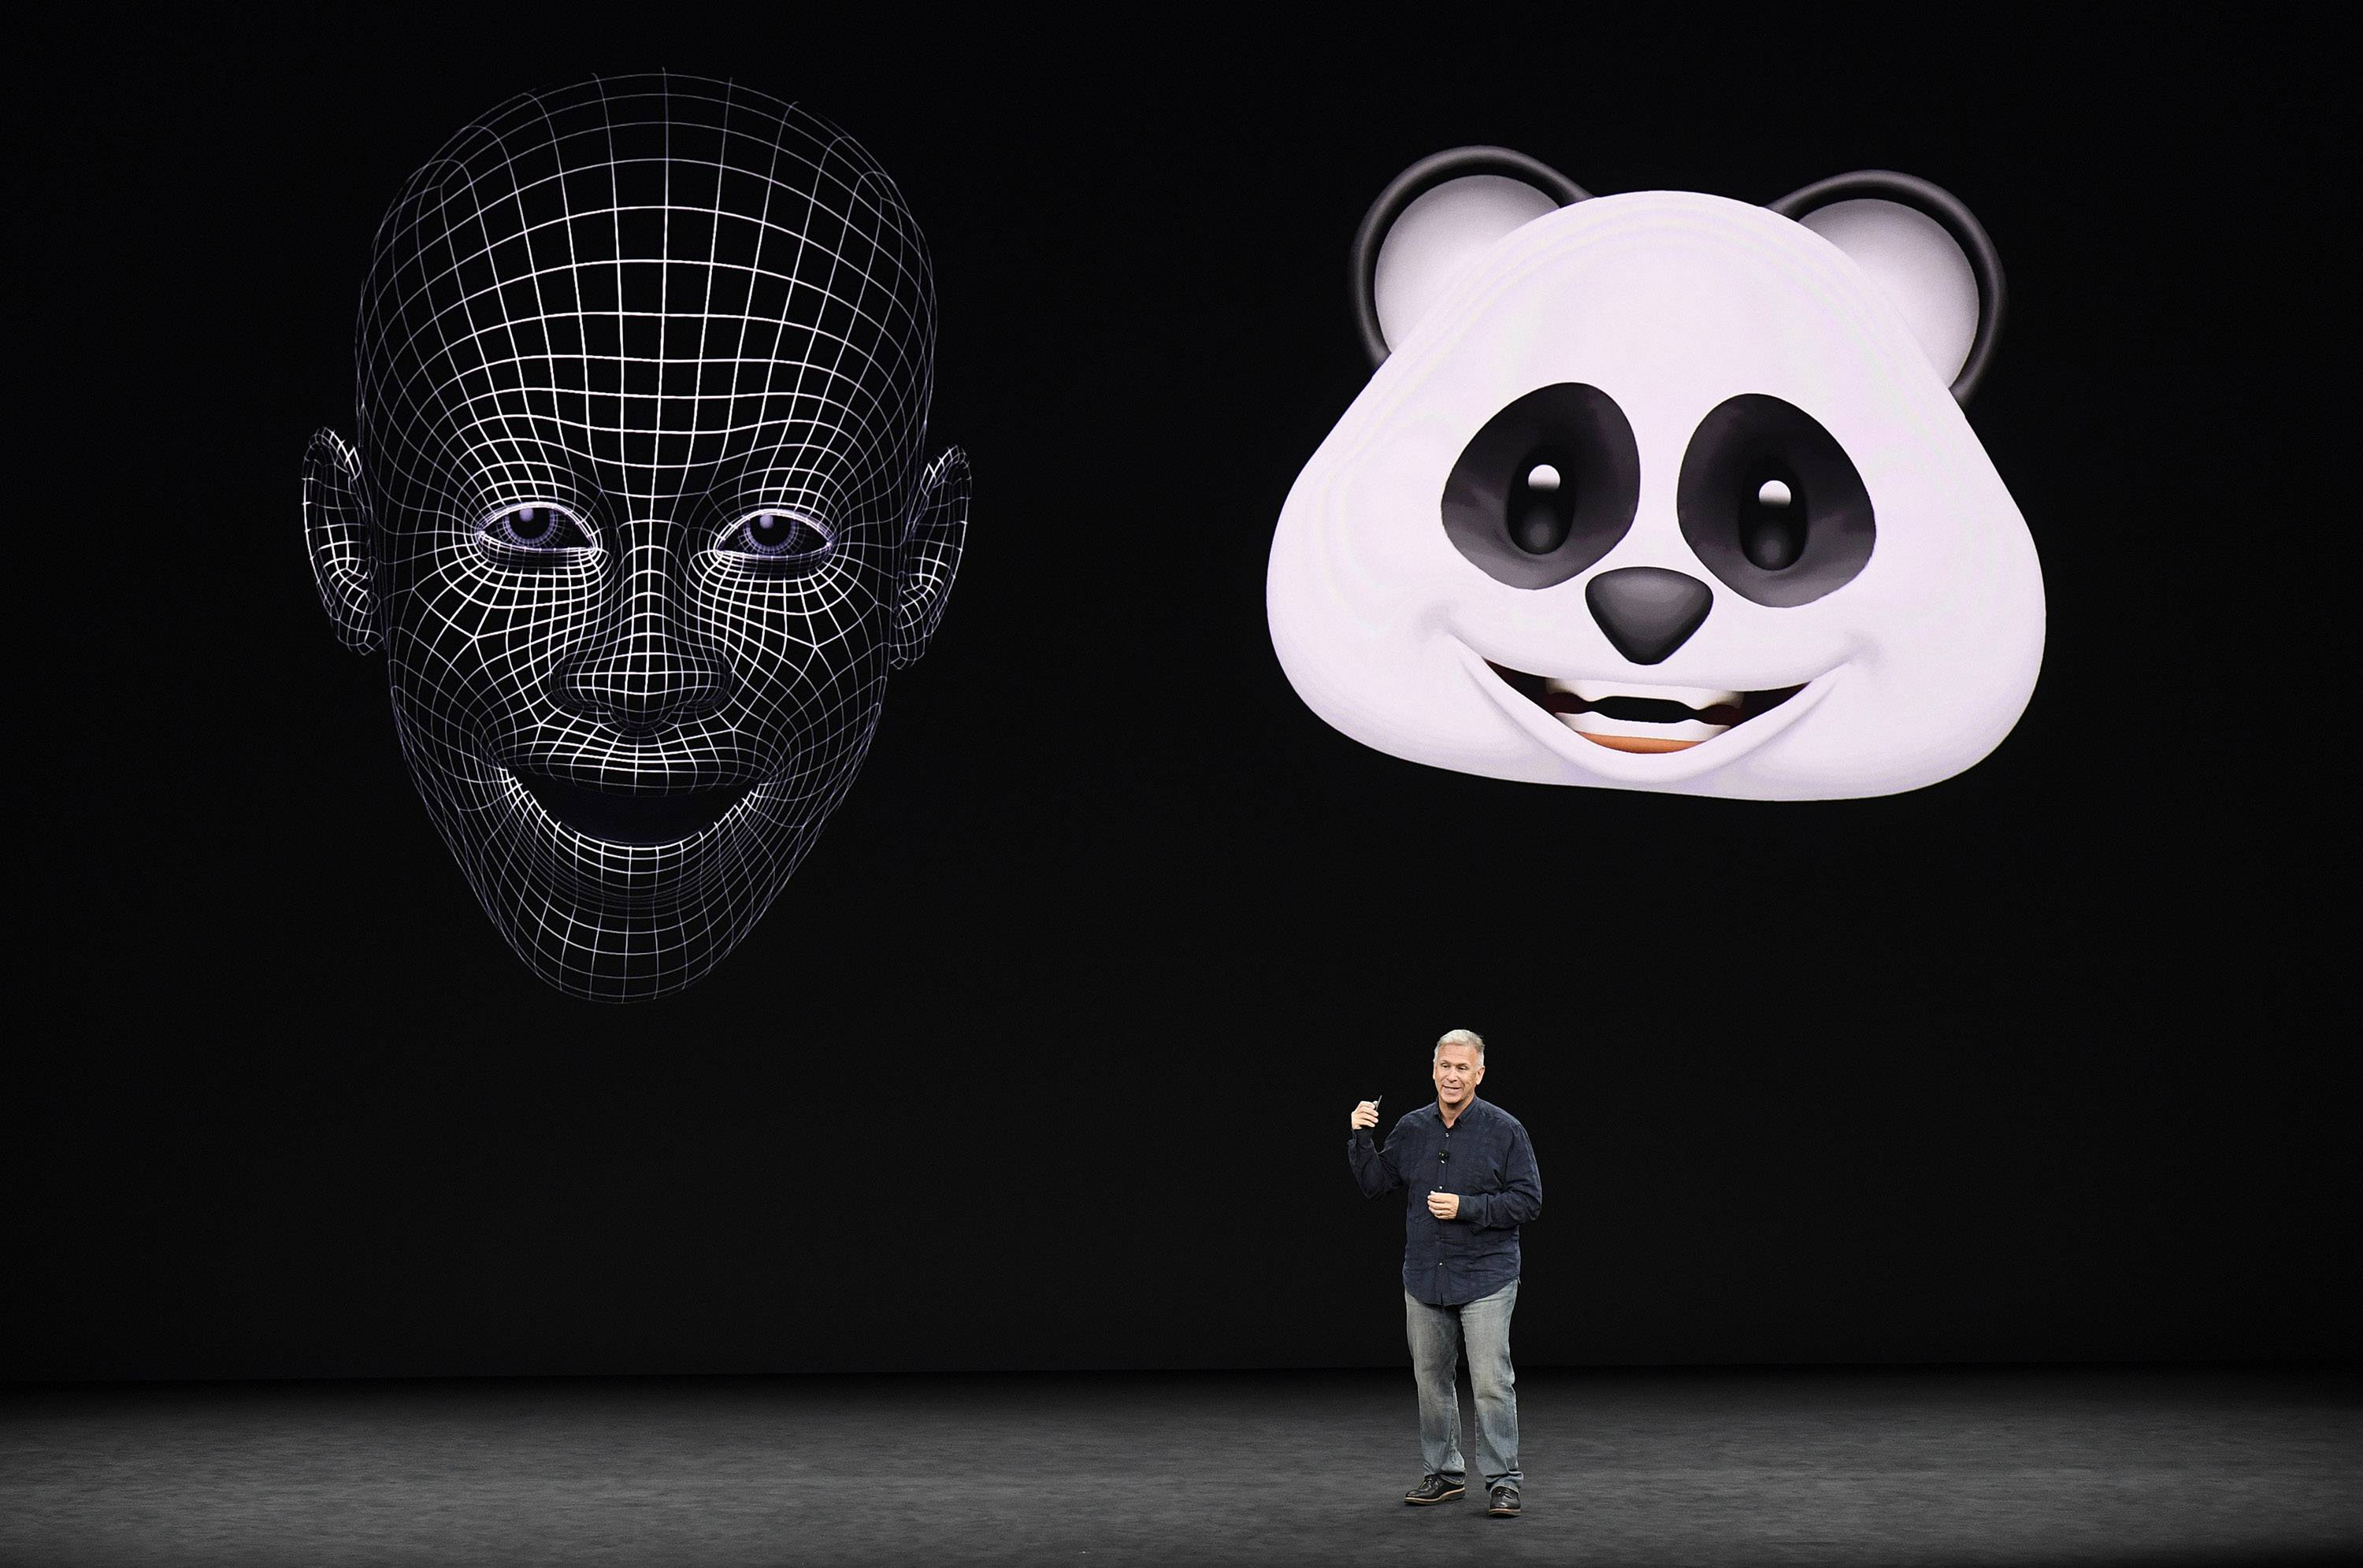 50-year-old facial recognition goes mainstream with Apple iPhone X